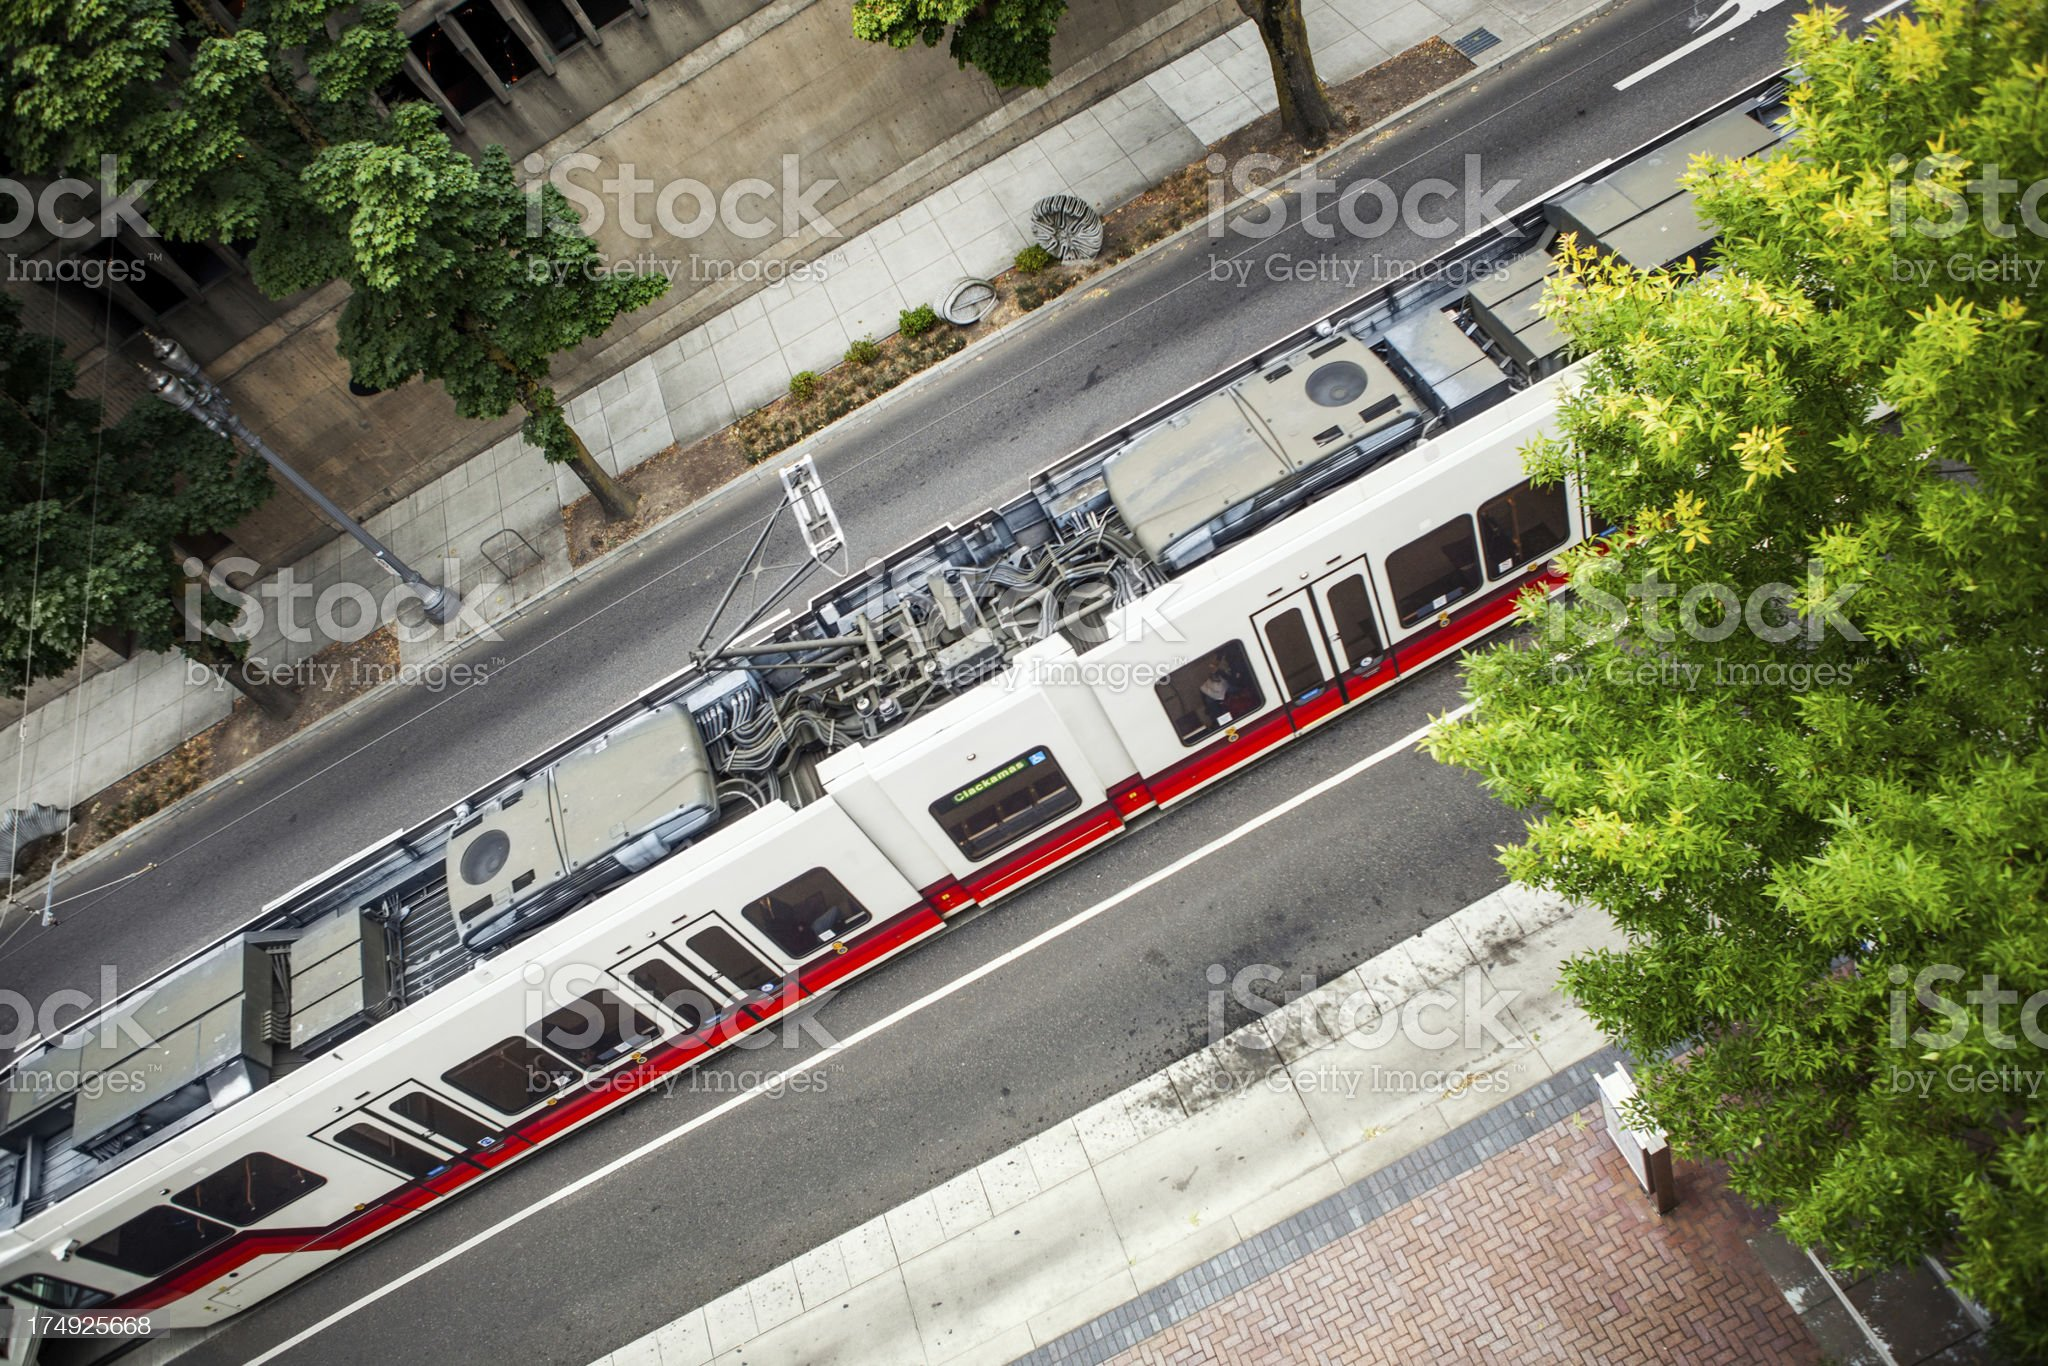 City Light Rail Car royalty-free stock photo